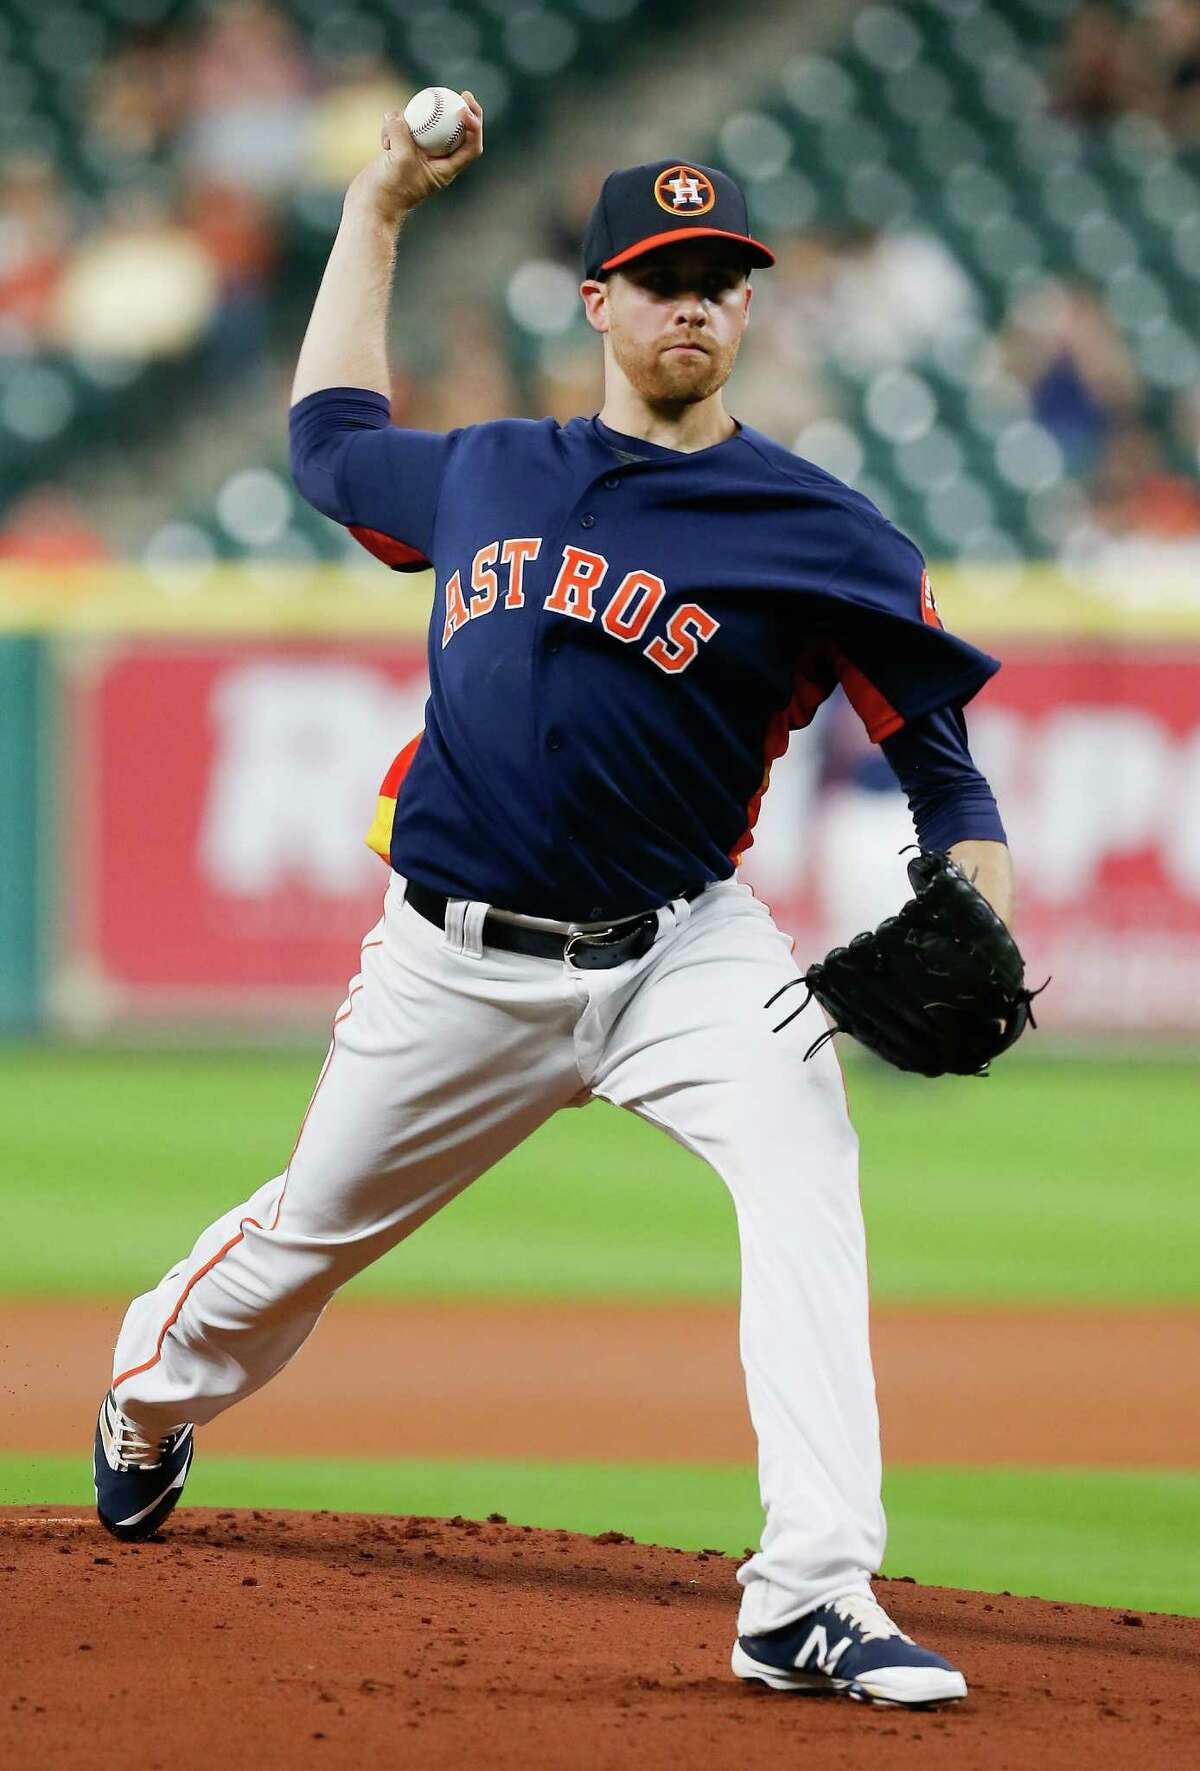 Houston Astros' Collin McHugh (31) throws in the first inning against the Milwaukee Brewers during a spring training baseball game Thursday, March 31, 2016, in Houston.